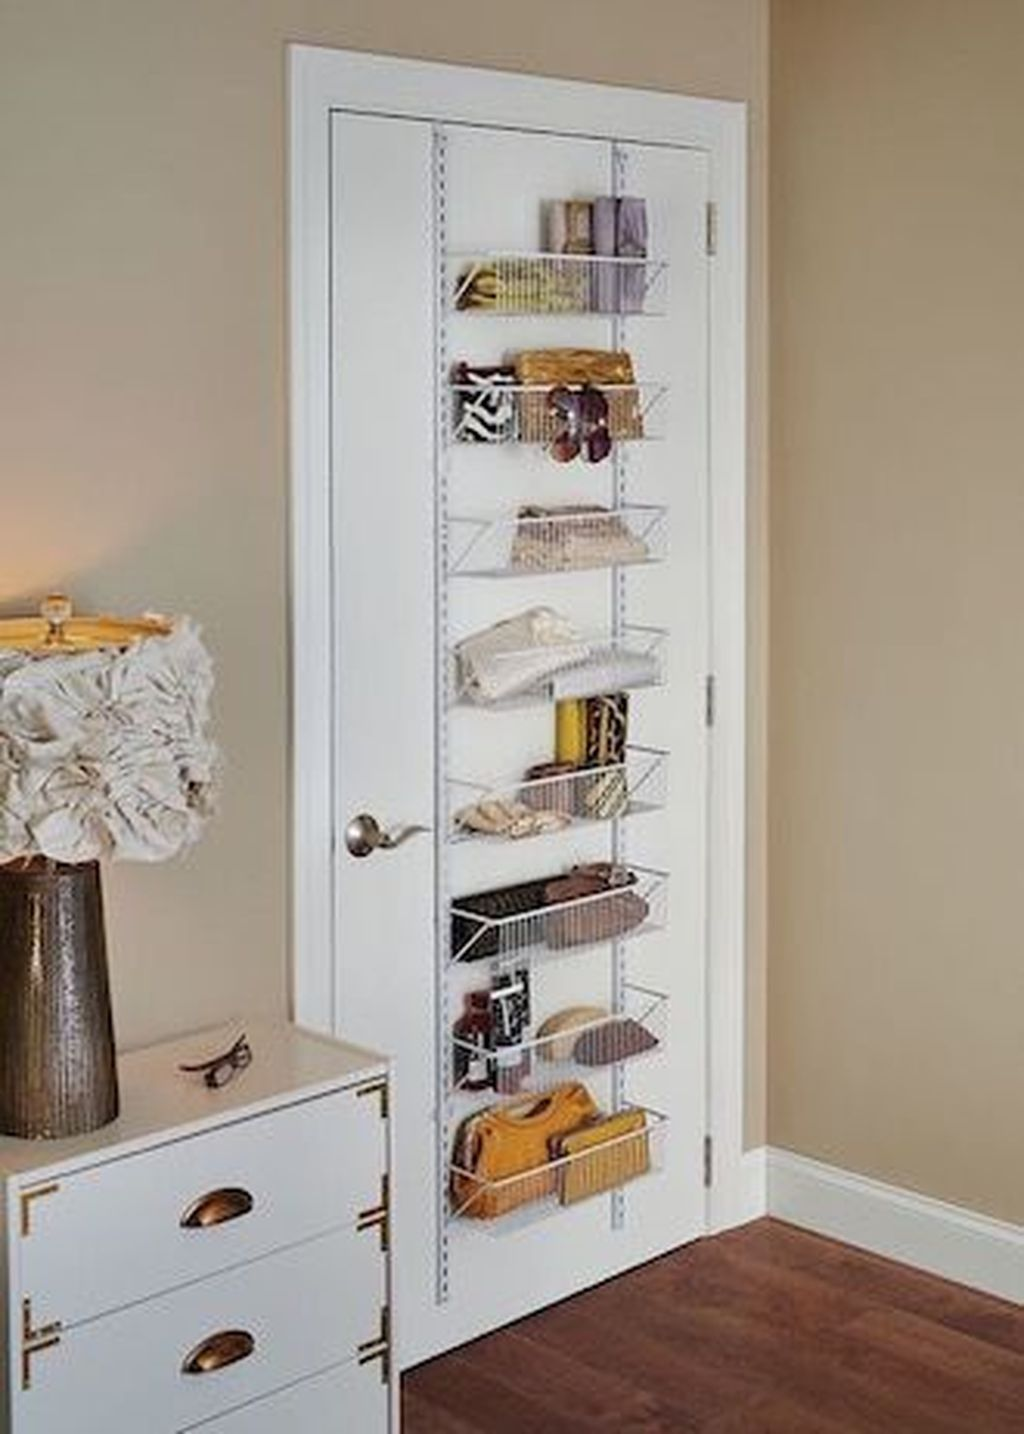 20 Smart Ideas For Bedroom Storage Ideas Trenduhome Diy Bedroom Storage Small Bedroom Organization Small Room Design